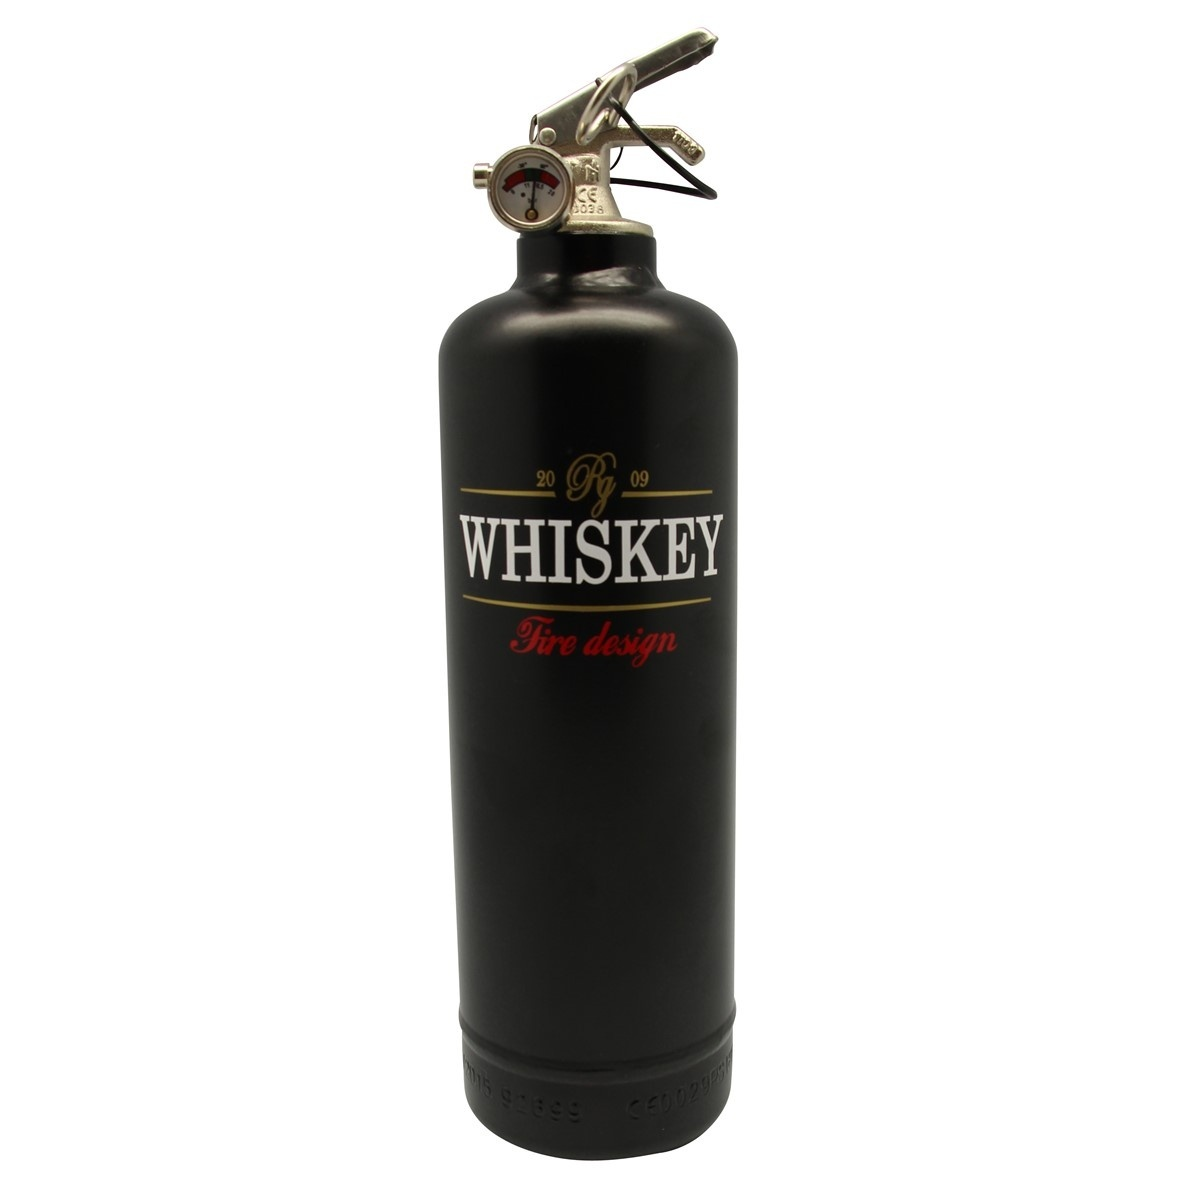 Extincteur Whiskey 2009 - Fire Design